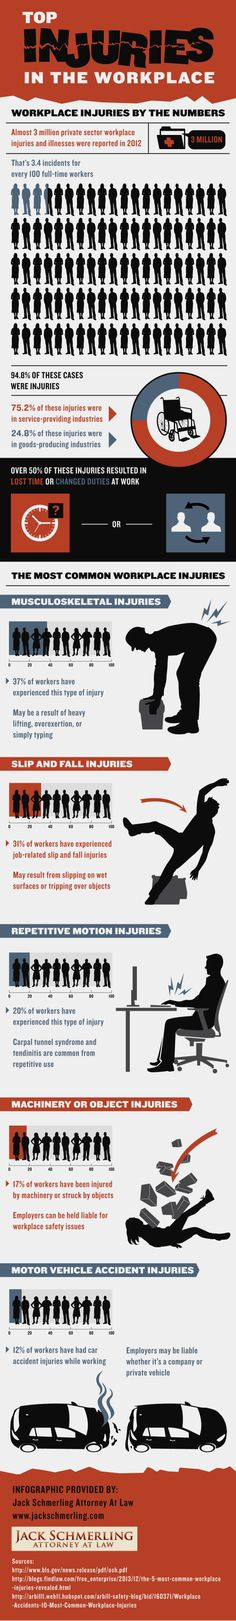 Approximately 3 million private sector workplace injuries and illnesses were reported in 2012. That's 3.4 incidents for every 100 full-time workers! Take a look at this infographic from an accident attorney in Baltimore to find more figures.